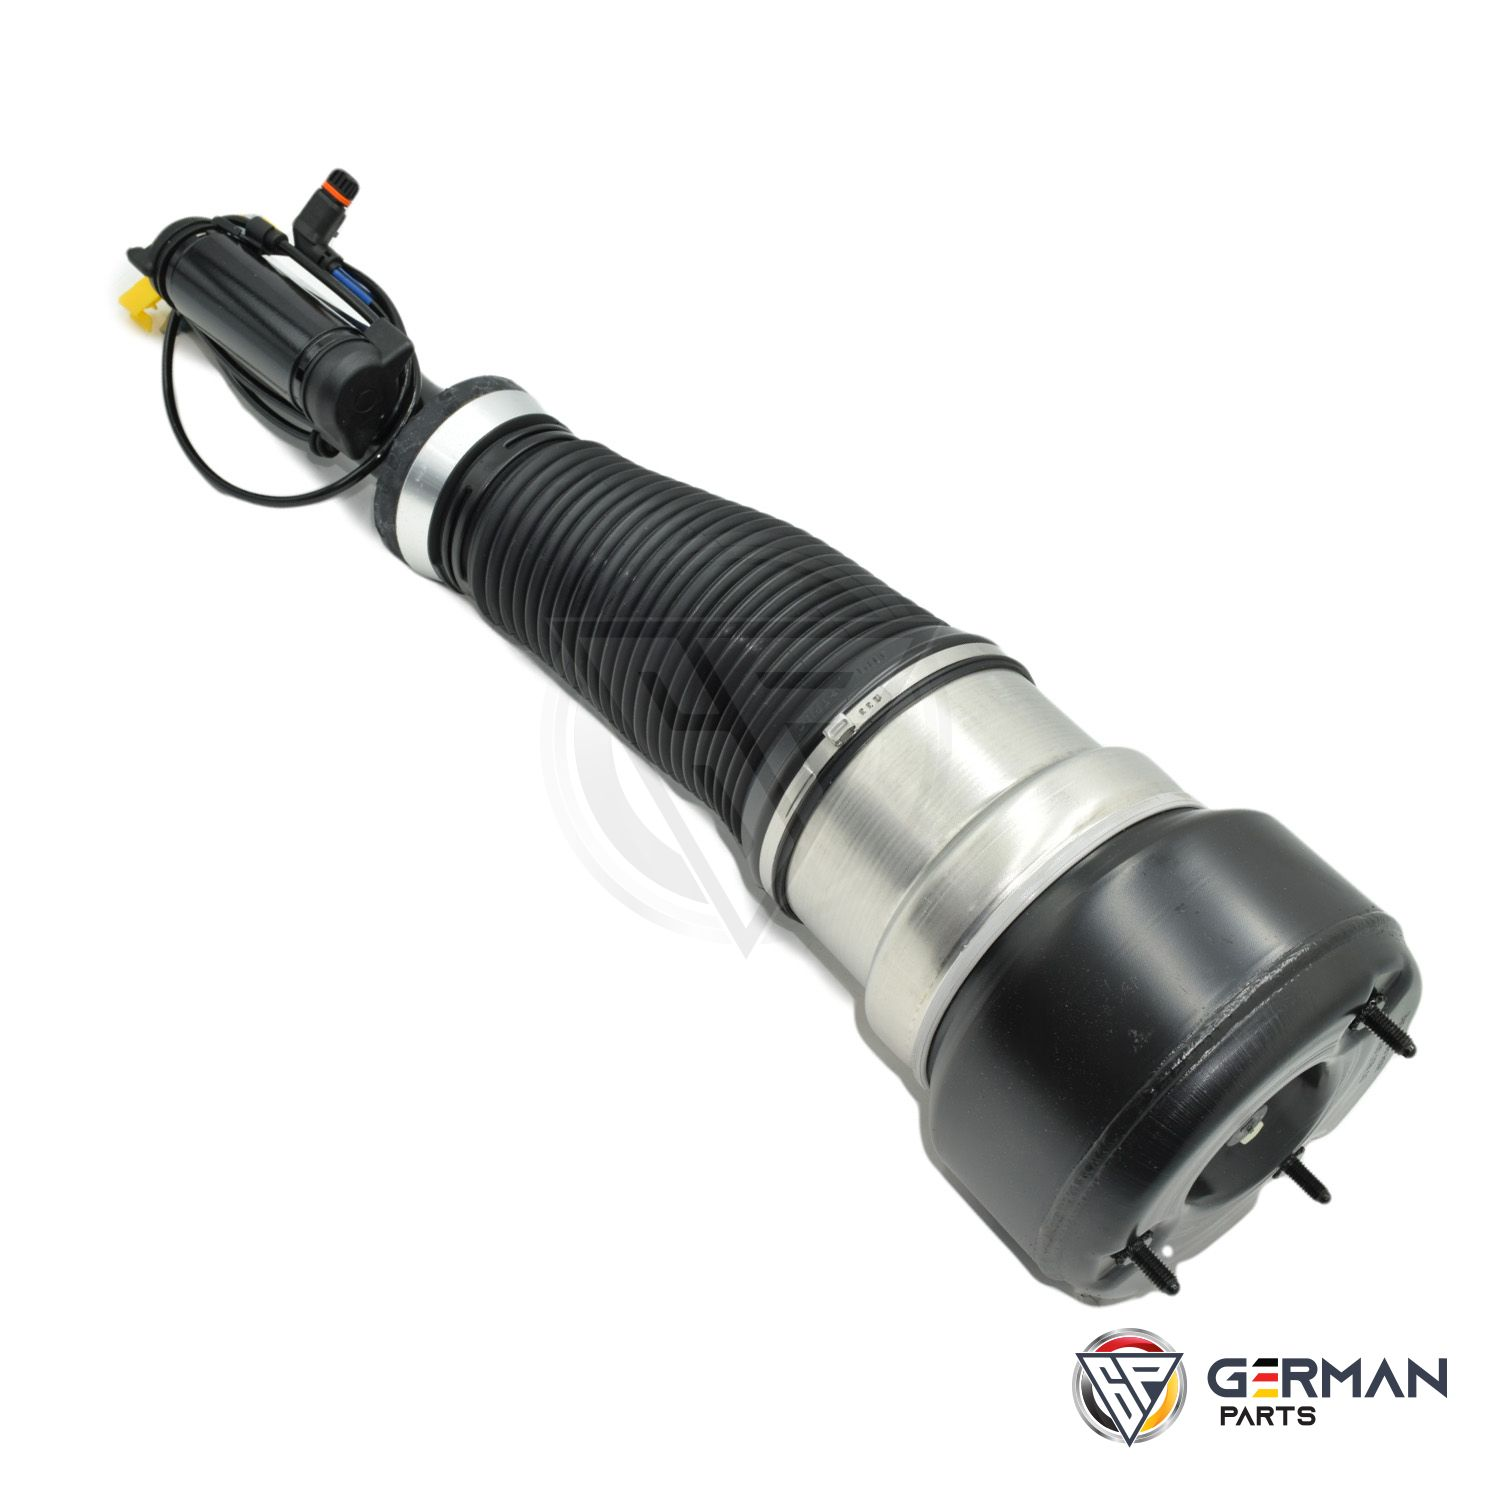 Buy Genuine Mercedes Benz Front Shock Absorber 2213209313 - German Parts